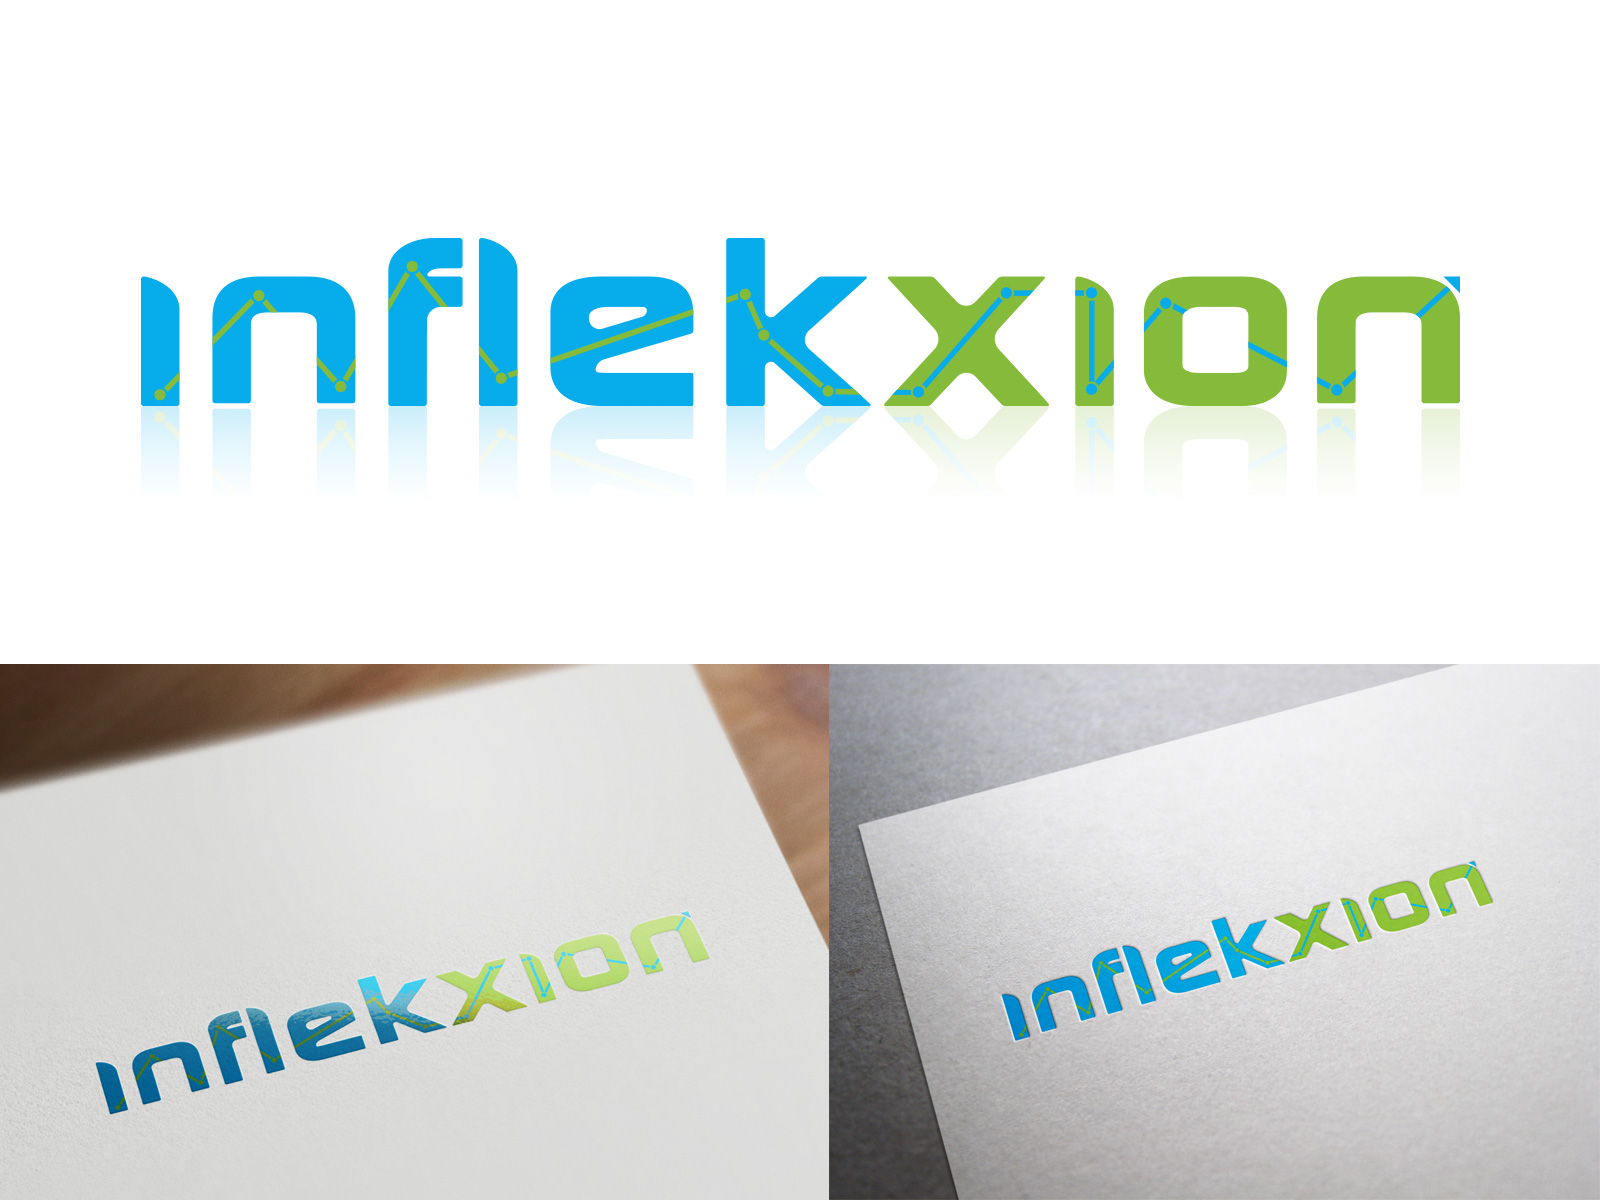 Logo Design by olii - Entry No. 184 in the Logo Design Contest Professional Logo Design for Inflekxion.